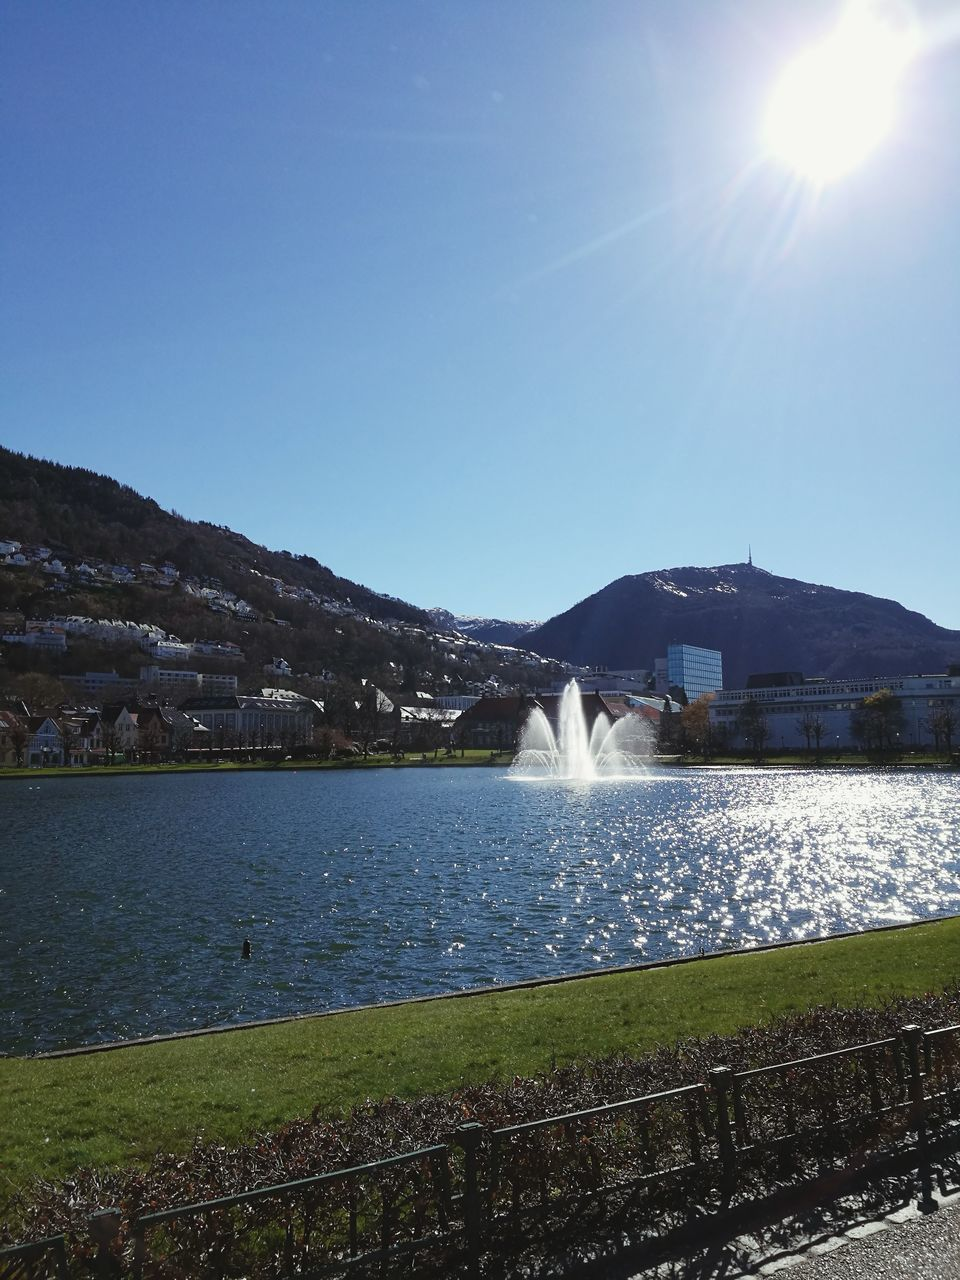 water, mountain, nature, beauty in nature, built structure, scenics, sunlight, architecture, tranquil scene, outdoors, day, lake, no people, sun, mountain range, tranquility, sky, clear sky, building exterior, travel destinations, landscape, spraying, grass